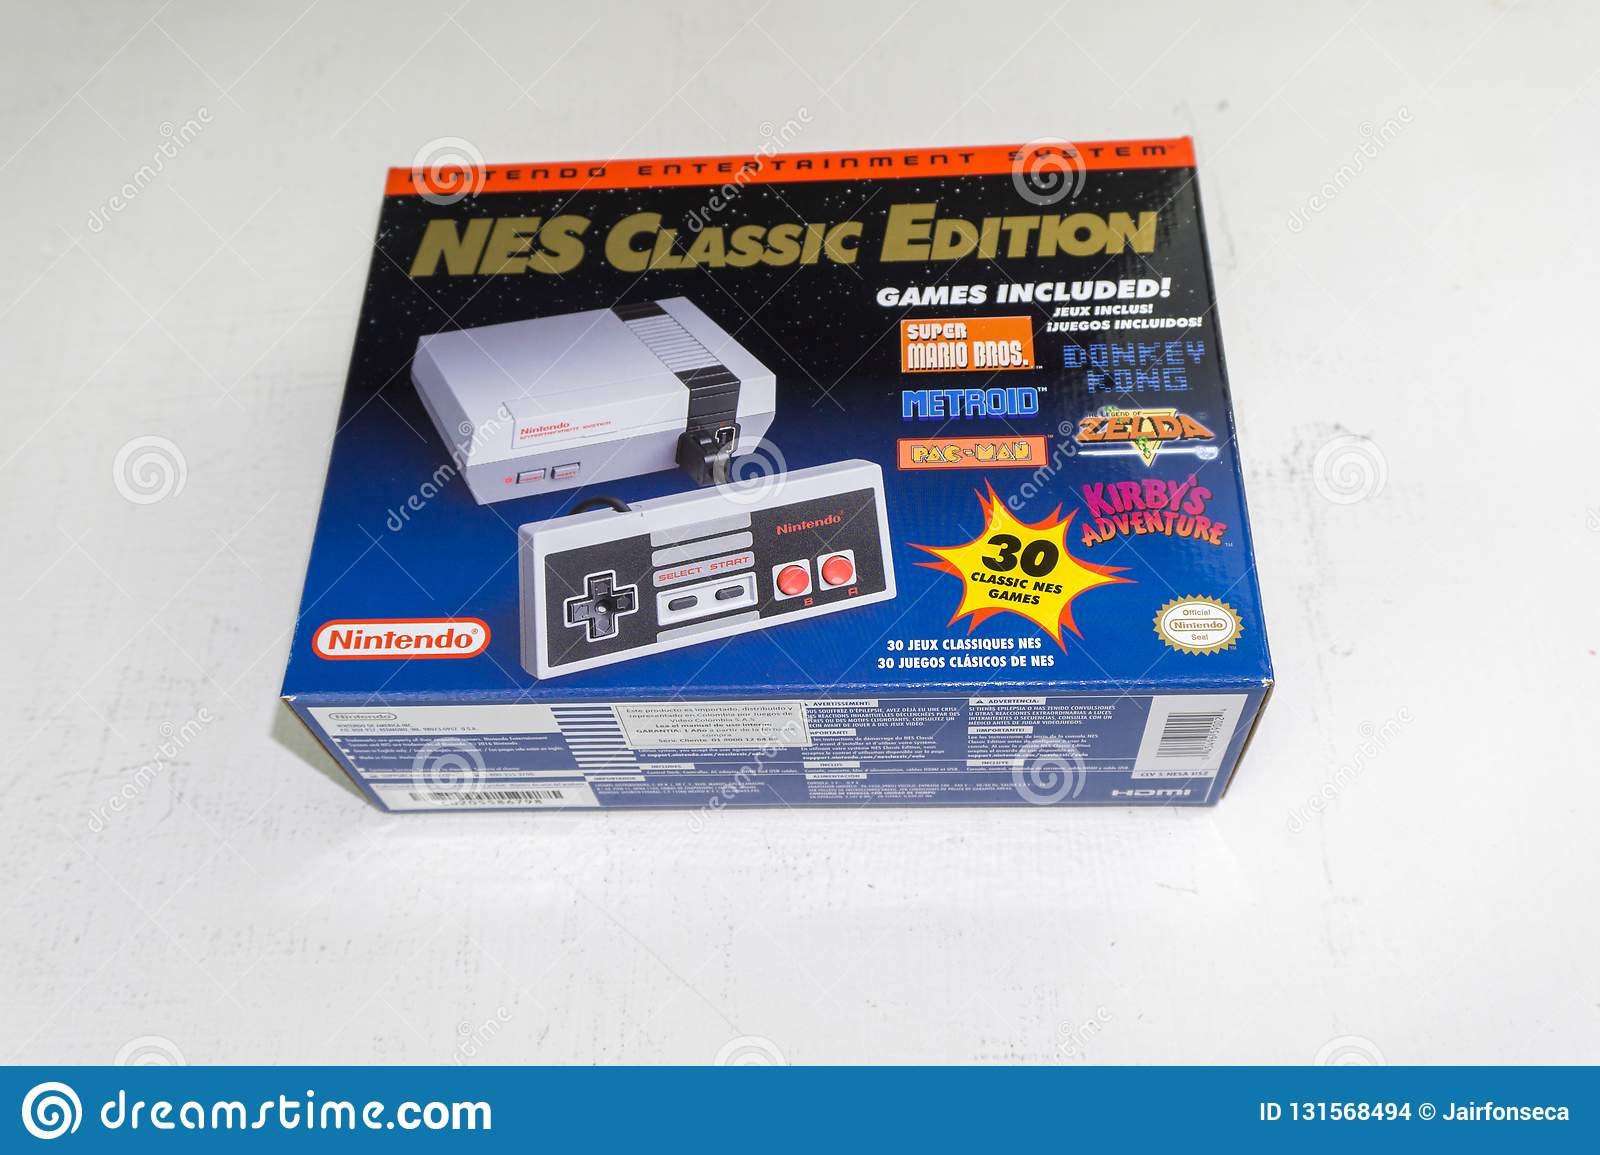 Nintendo Nes Classic Edition Video Game Console Editorial Stock